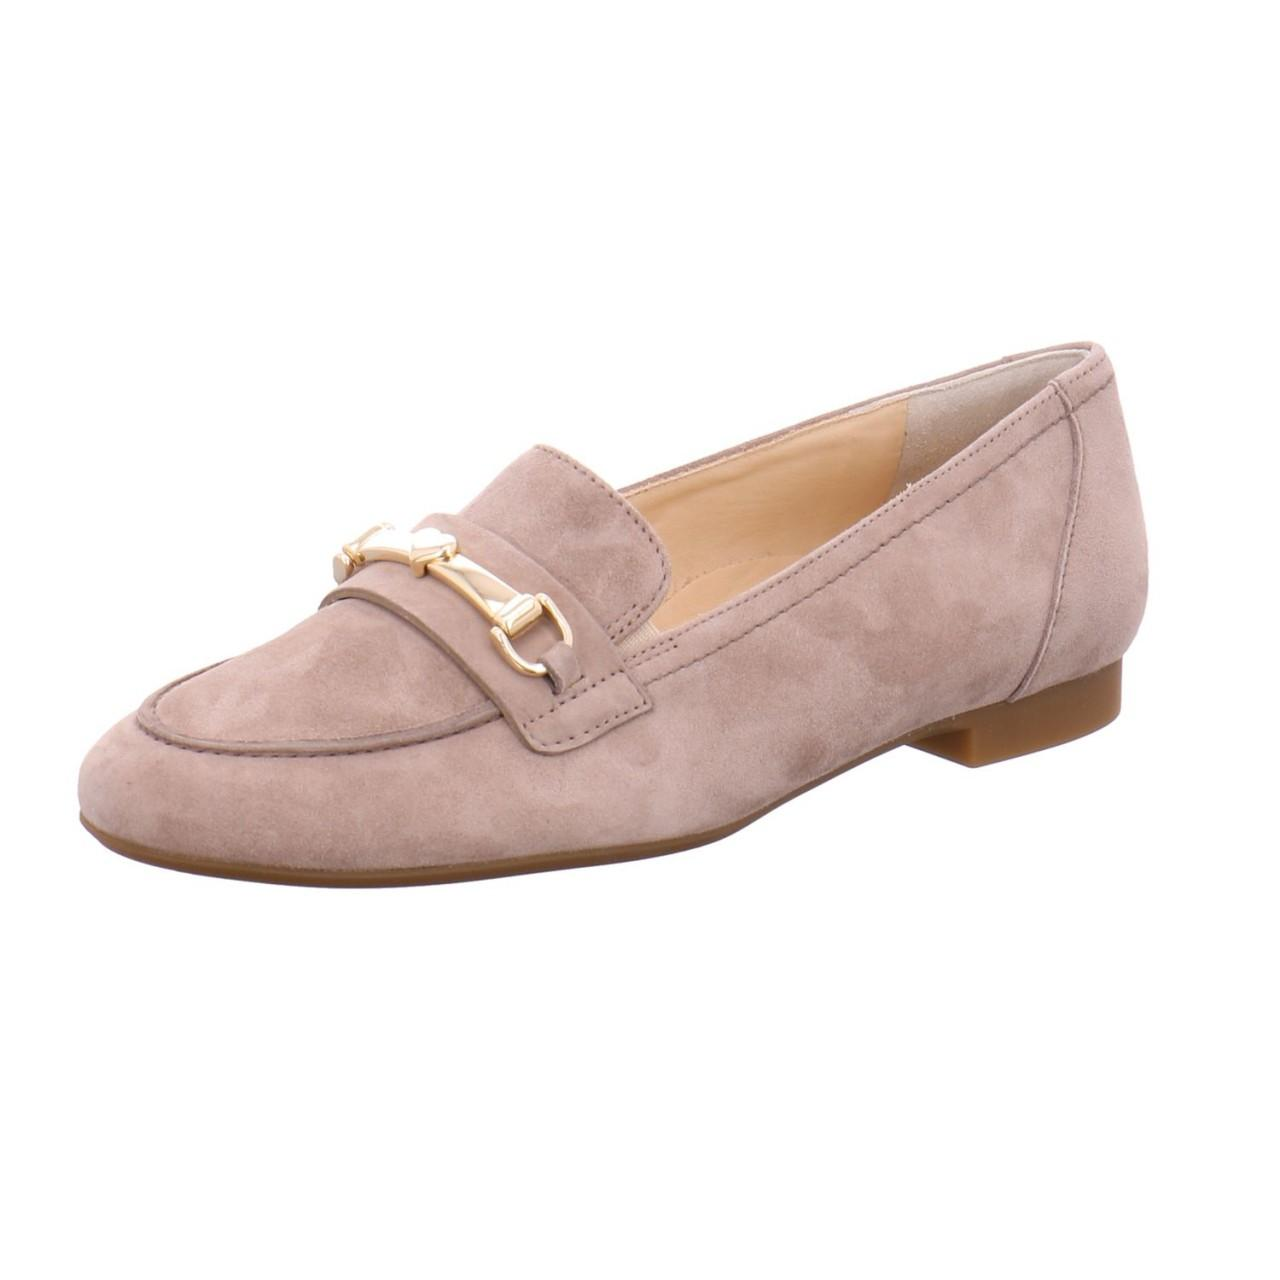 84c77d763 Paul Green Wo Classic Slip-ons 0062-2346-022/slipper in Pink - Lyst